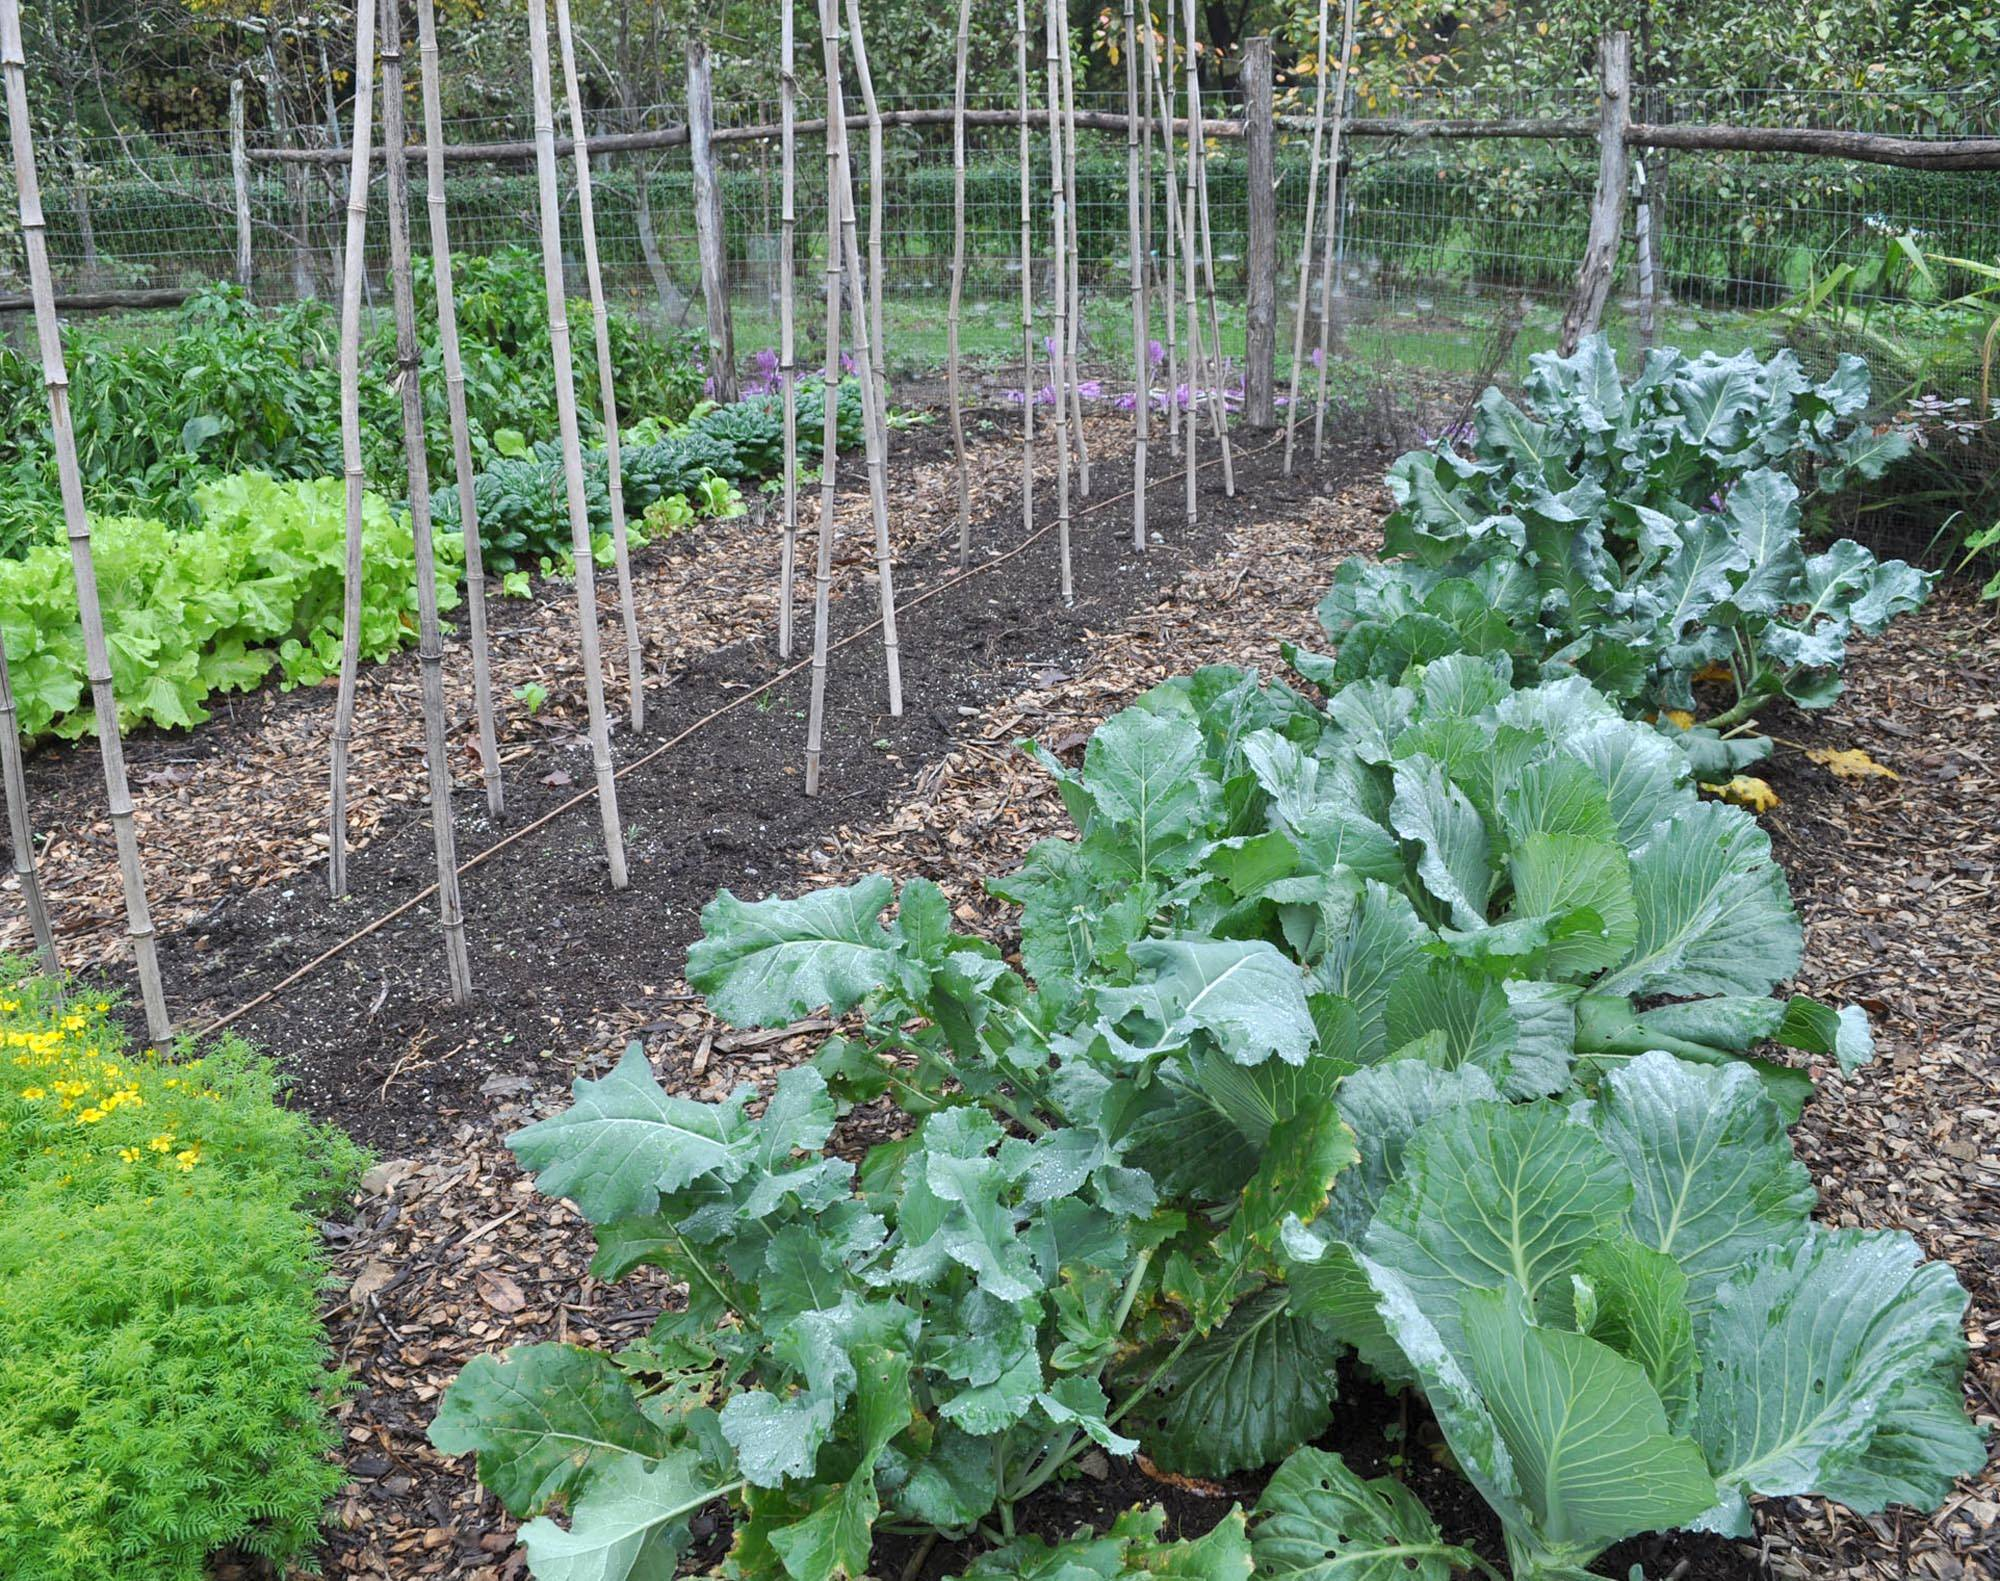 Growing fall vegetables is like having a whole other growing season in the garden. Cool weather brings out the best flavor from vegetables such as kale, broccoli, and carrots. And the harvest season is long; fall vegetables just sit pretty, awaiting harvest at your leisure.